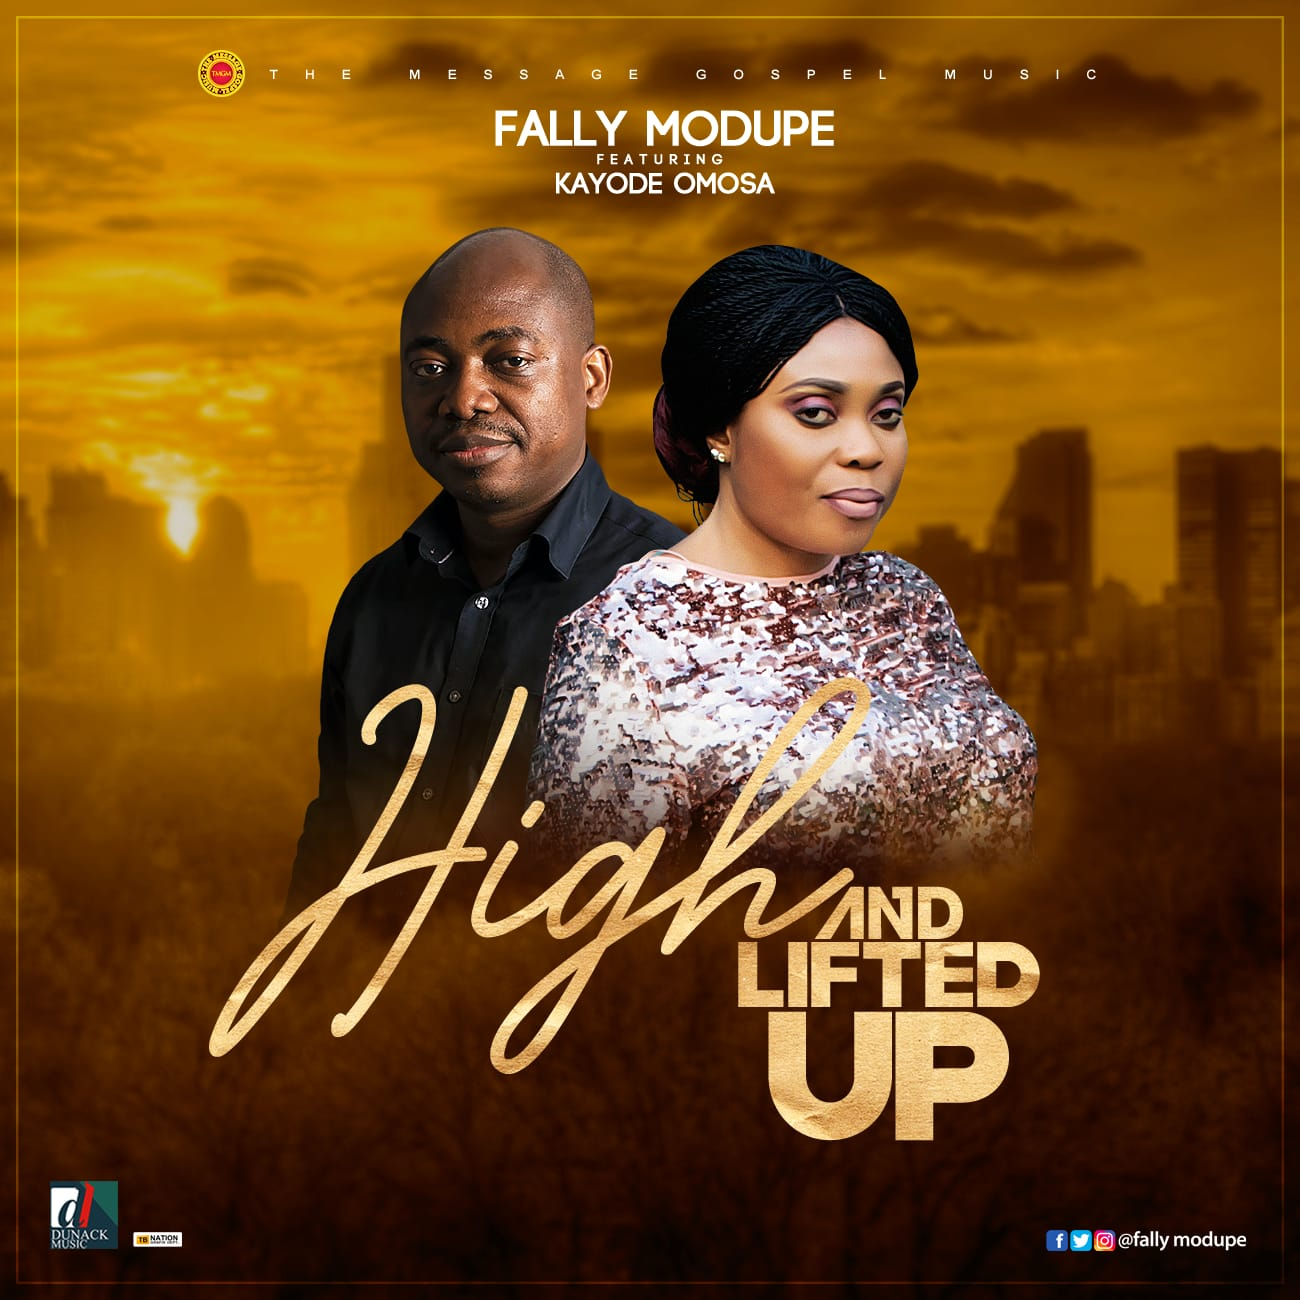 Download Mp3 High and Lifted Up – Fally Modupe Ft. Kayode Omosa